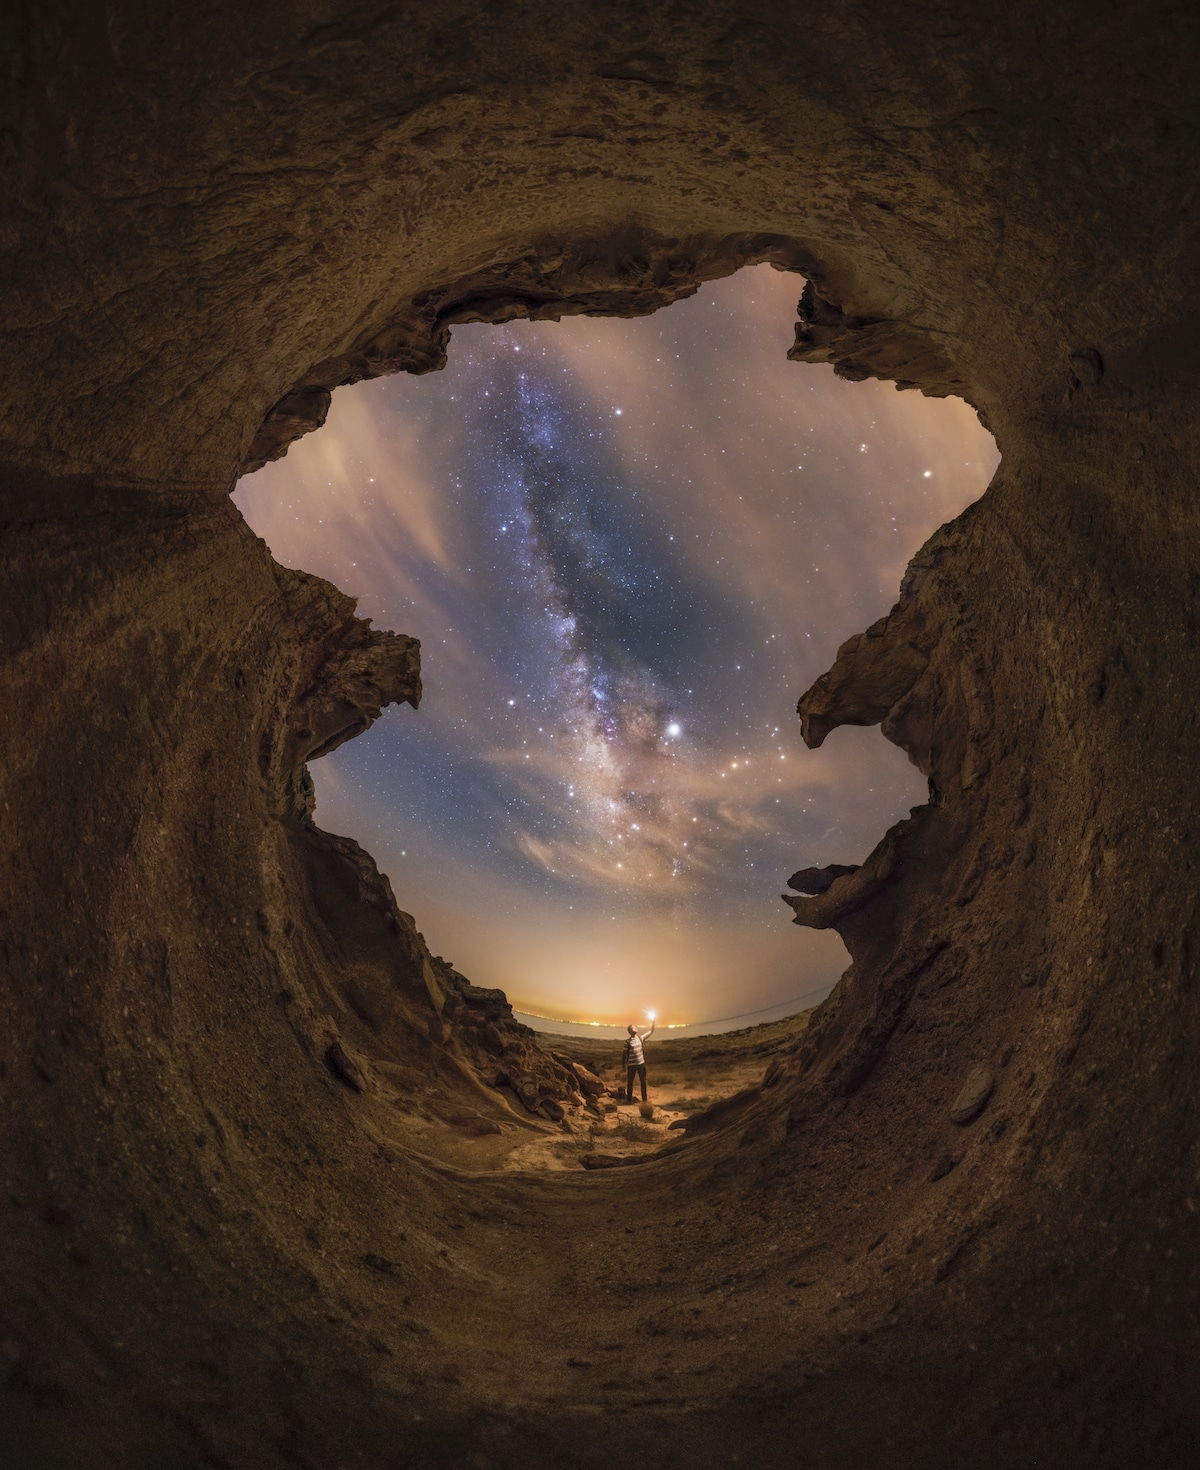 360 Degree Panoramic of the Milky Way